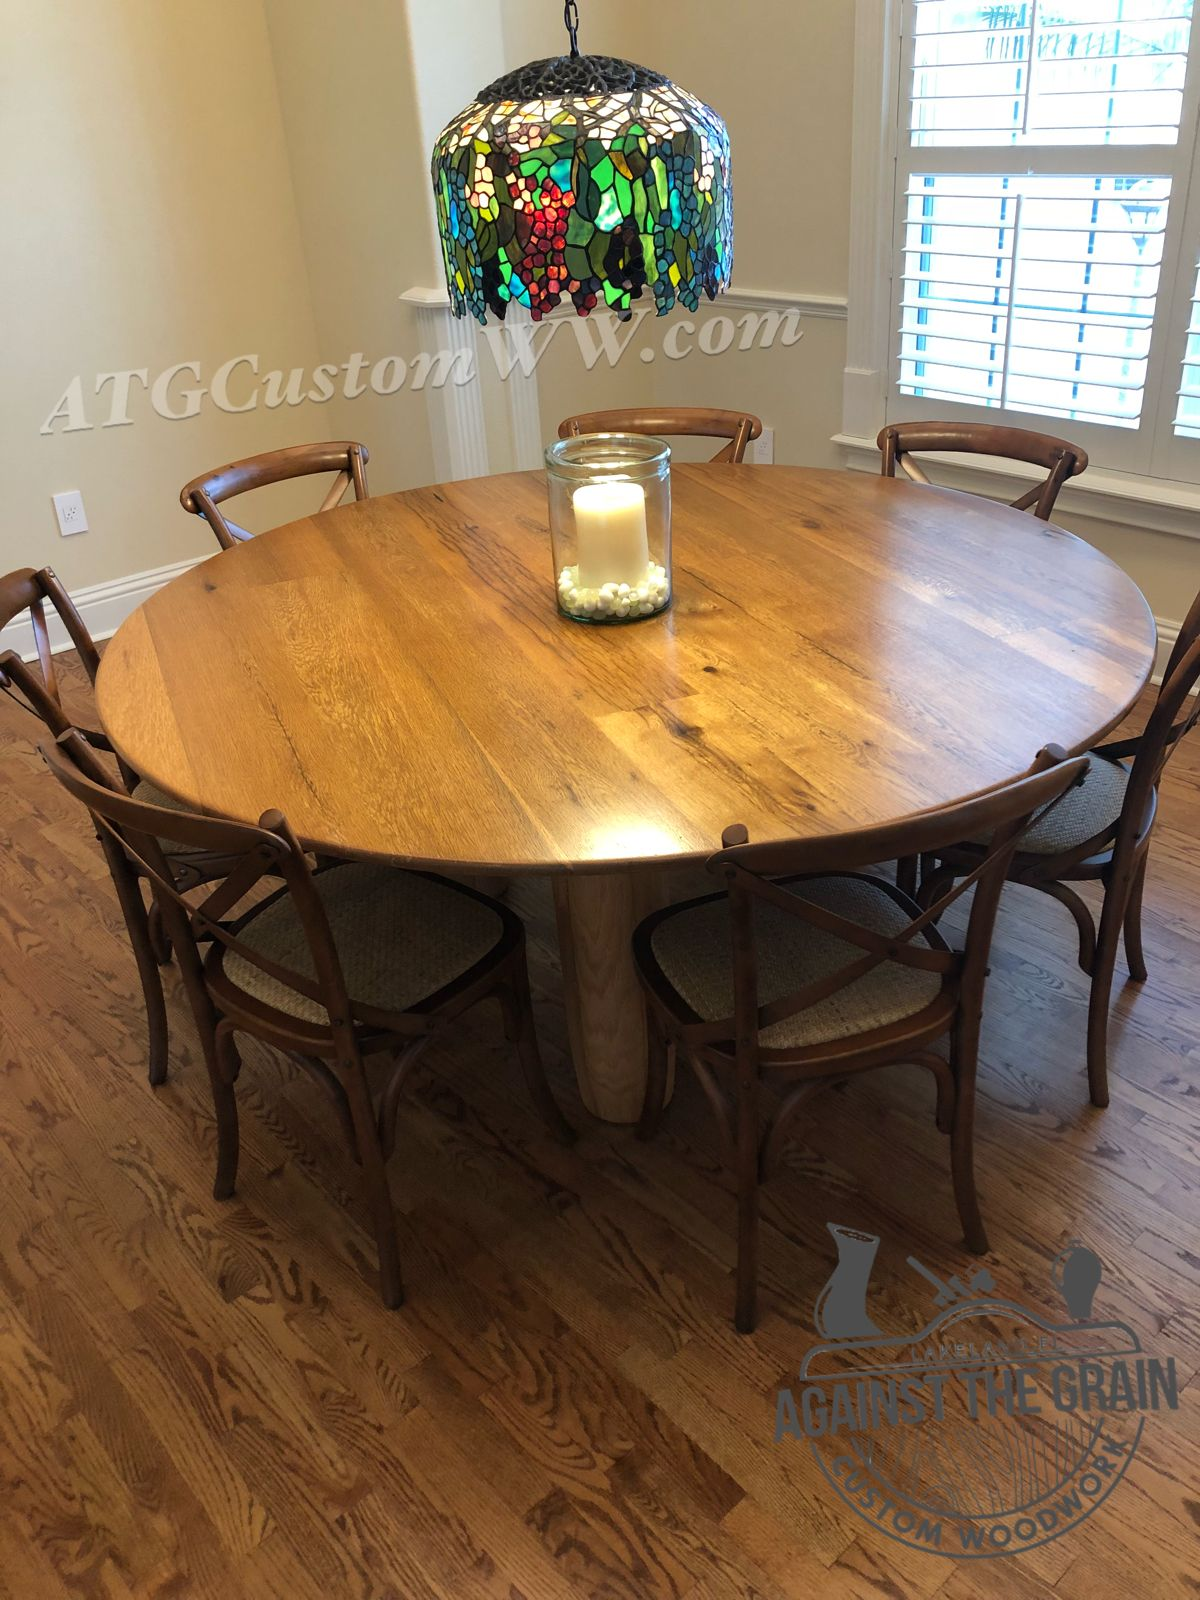 Amazing Piece With Tons Of Reclaimed Barn Wood Character Great For Any Dining Room Or Breakfast Nook Circular Dining Room Table Circular Dining Table